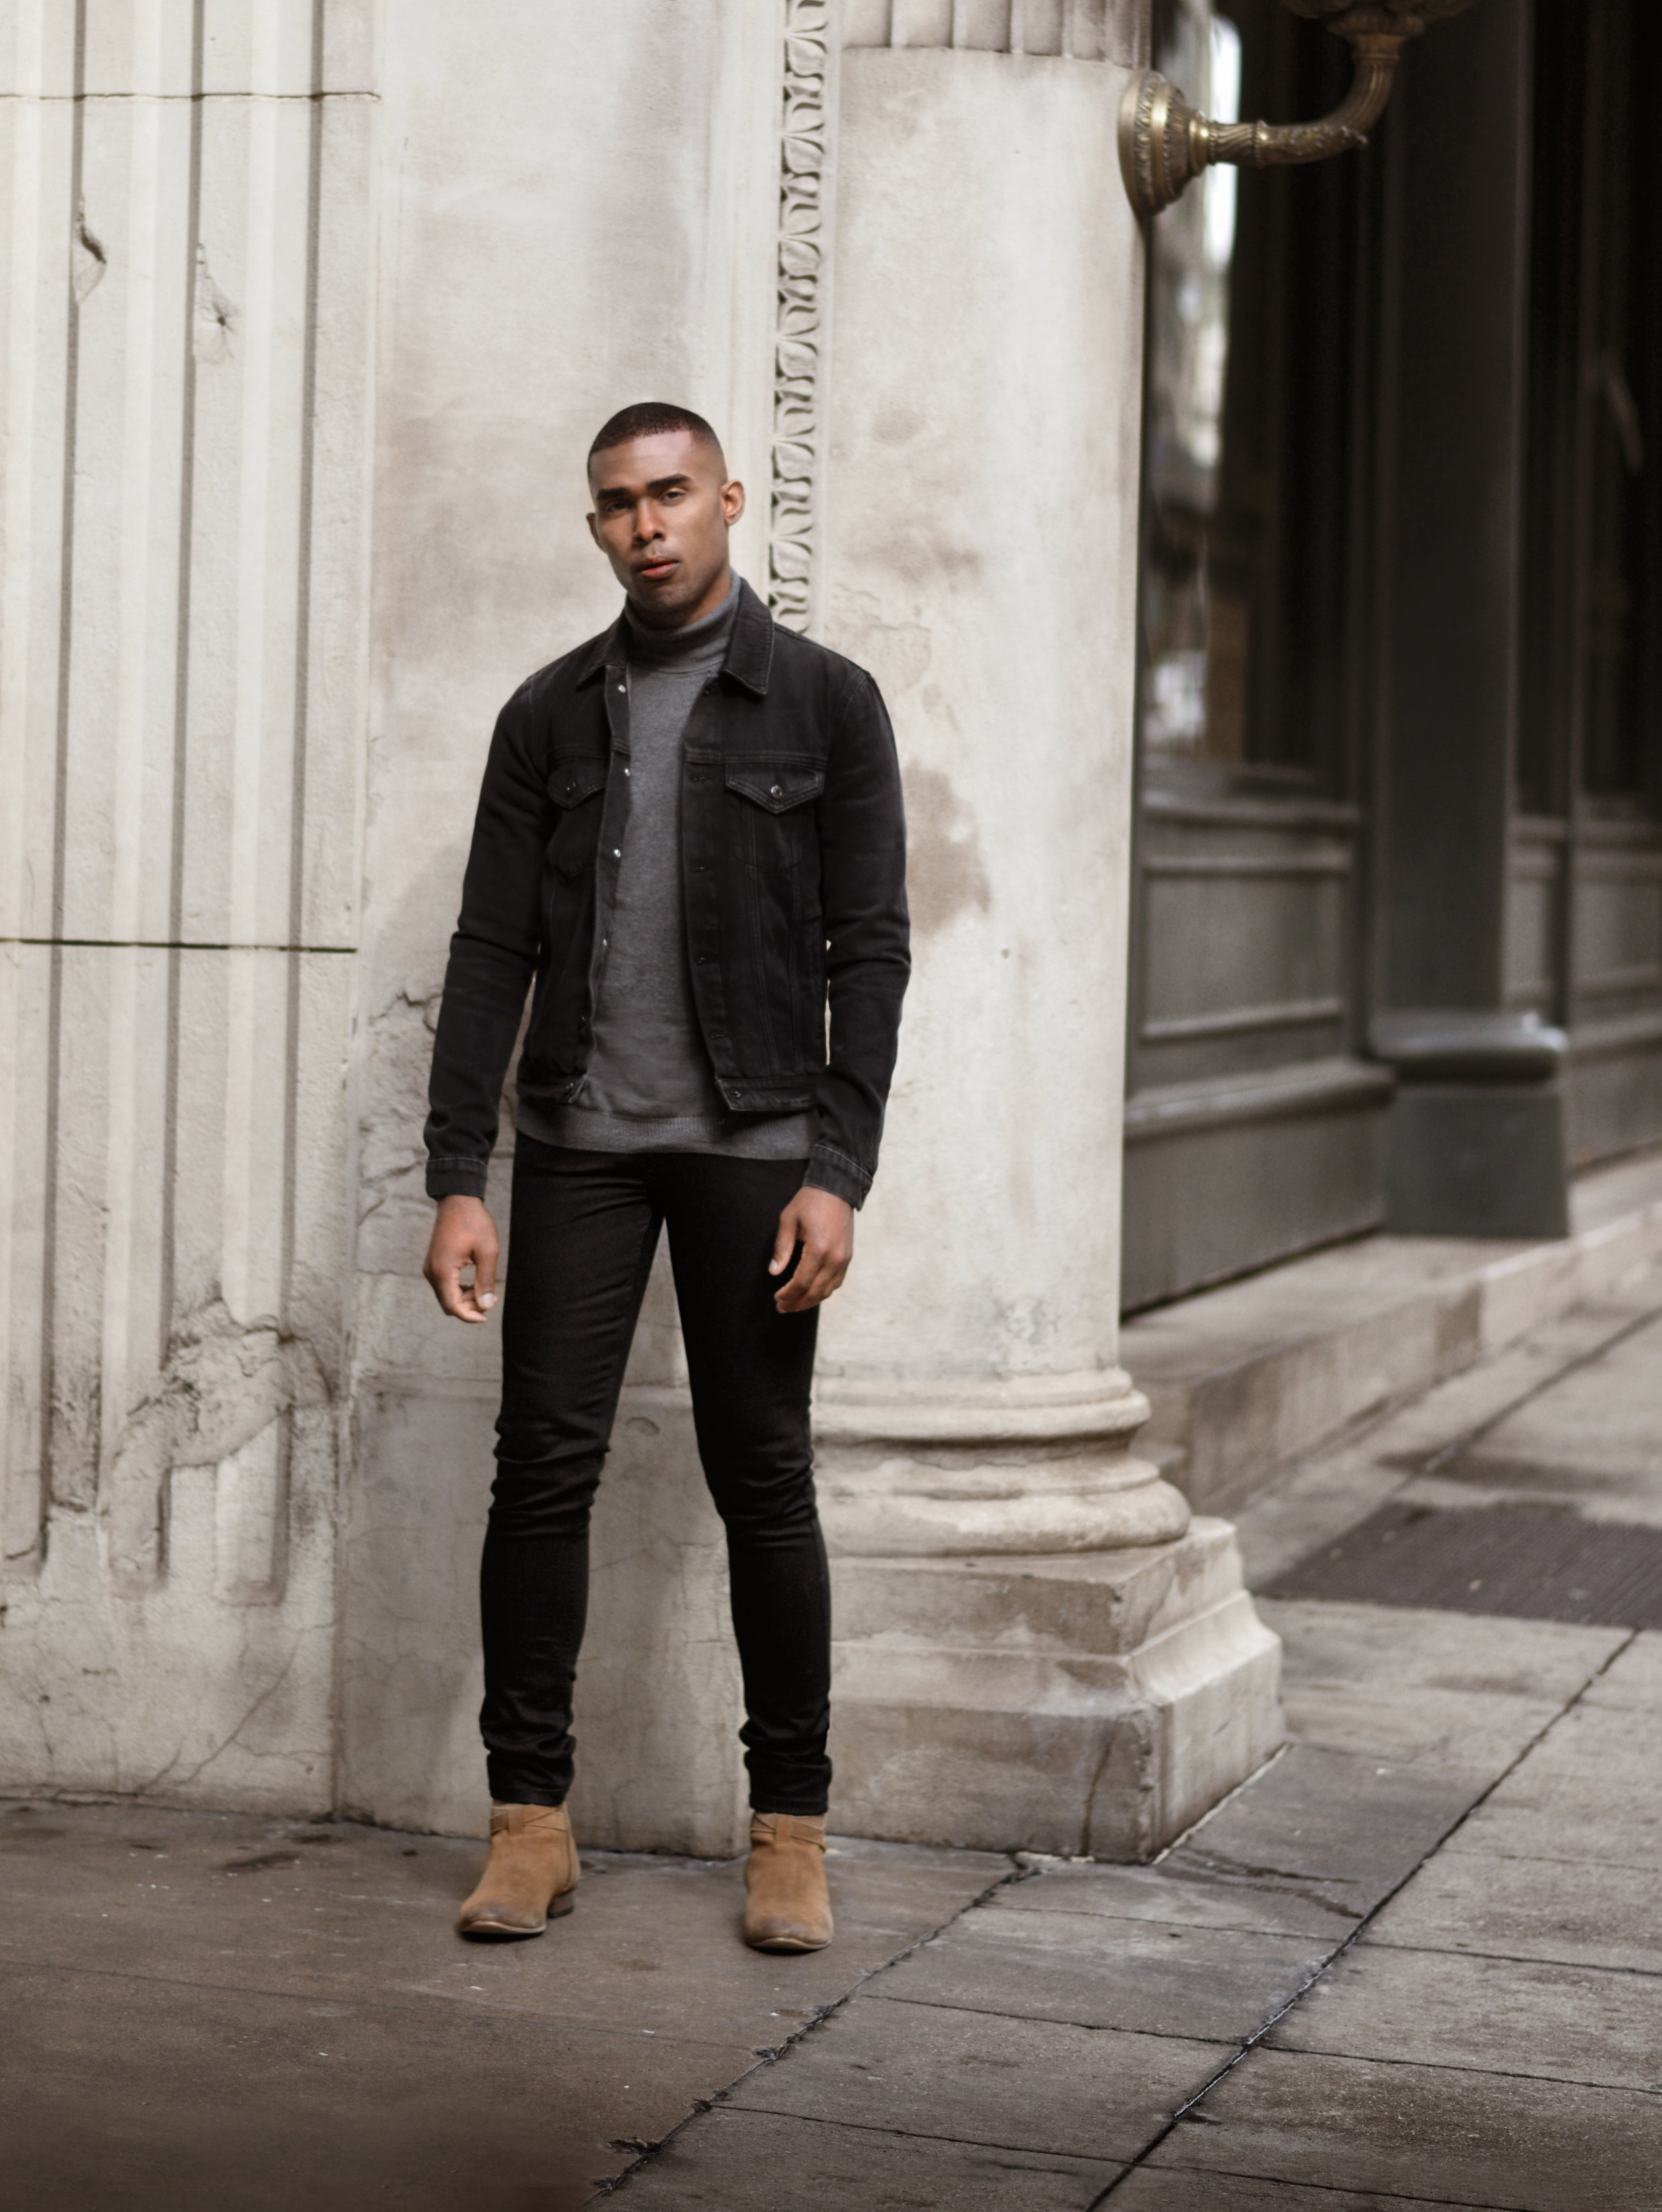 The-Look-Principle-Topman-Denim-A Celebration-Of-The-Fabric-We Live-In-1.jpg